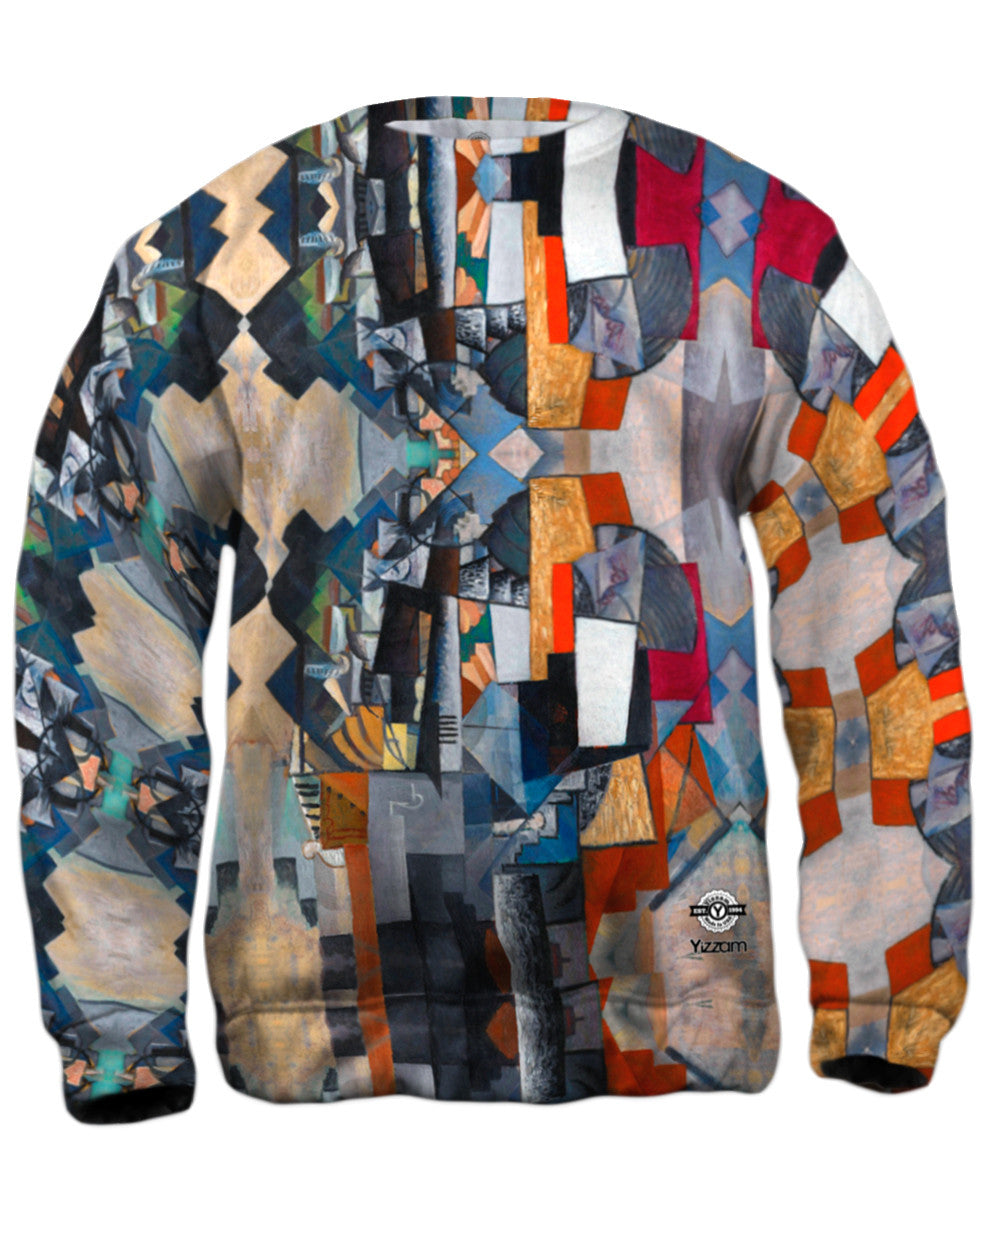 1913 Yizzam- Kazimir Malevich Bureau and Room -Allover Print Mens Hoodie